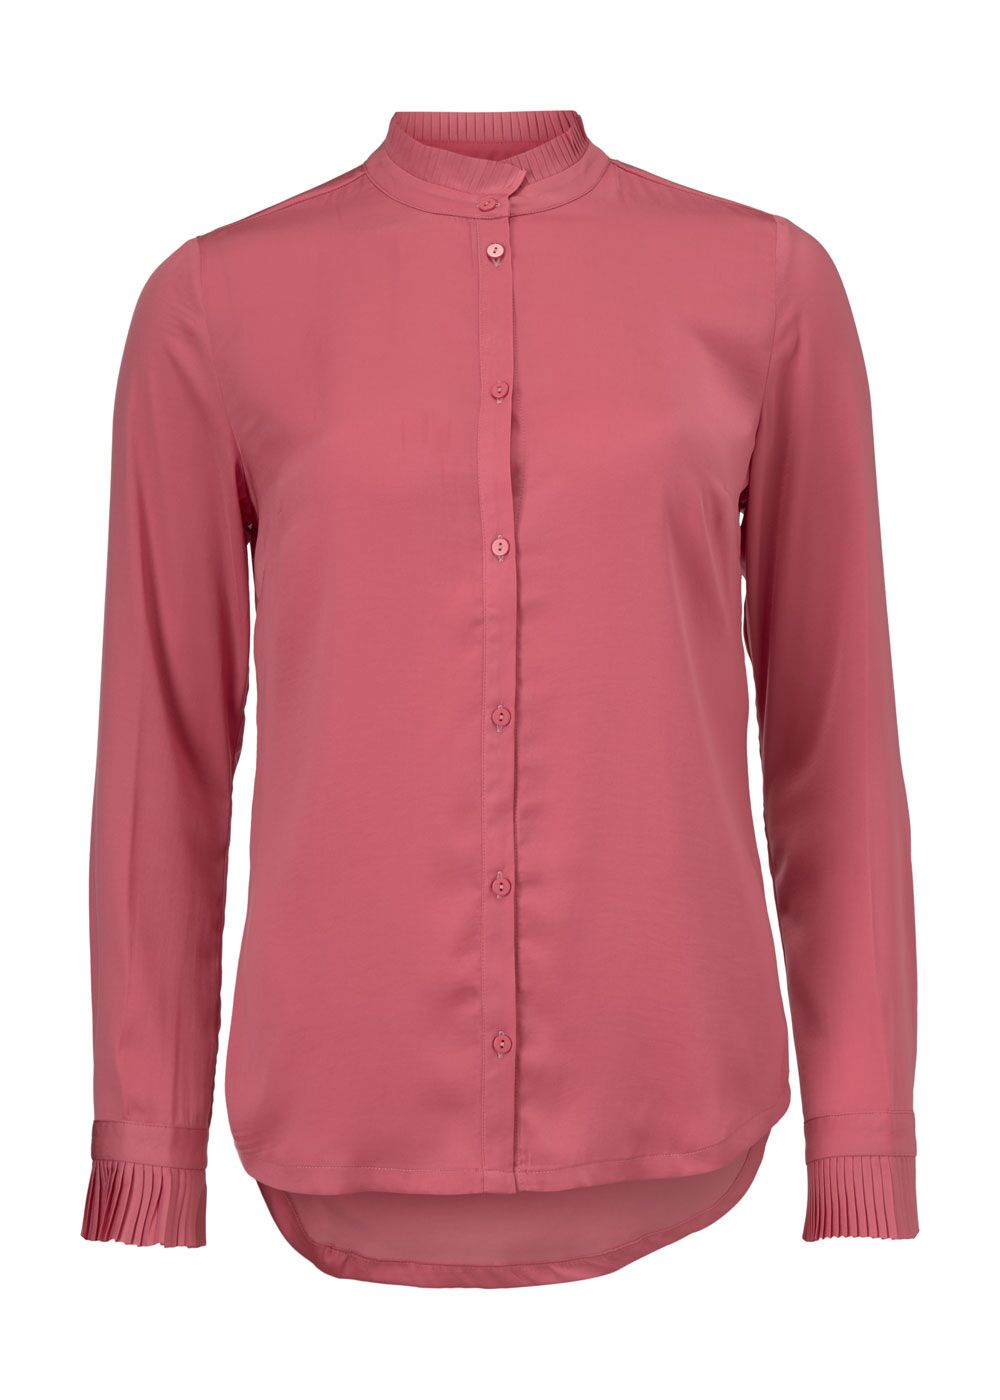 Noelle Shirt - Rose Passion